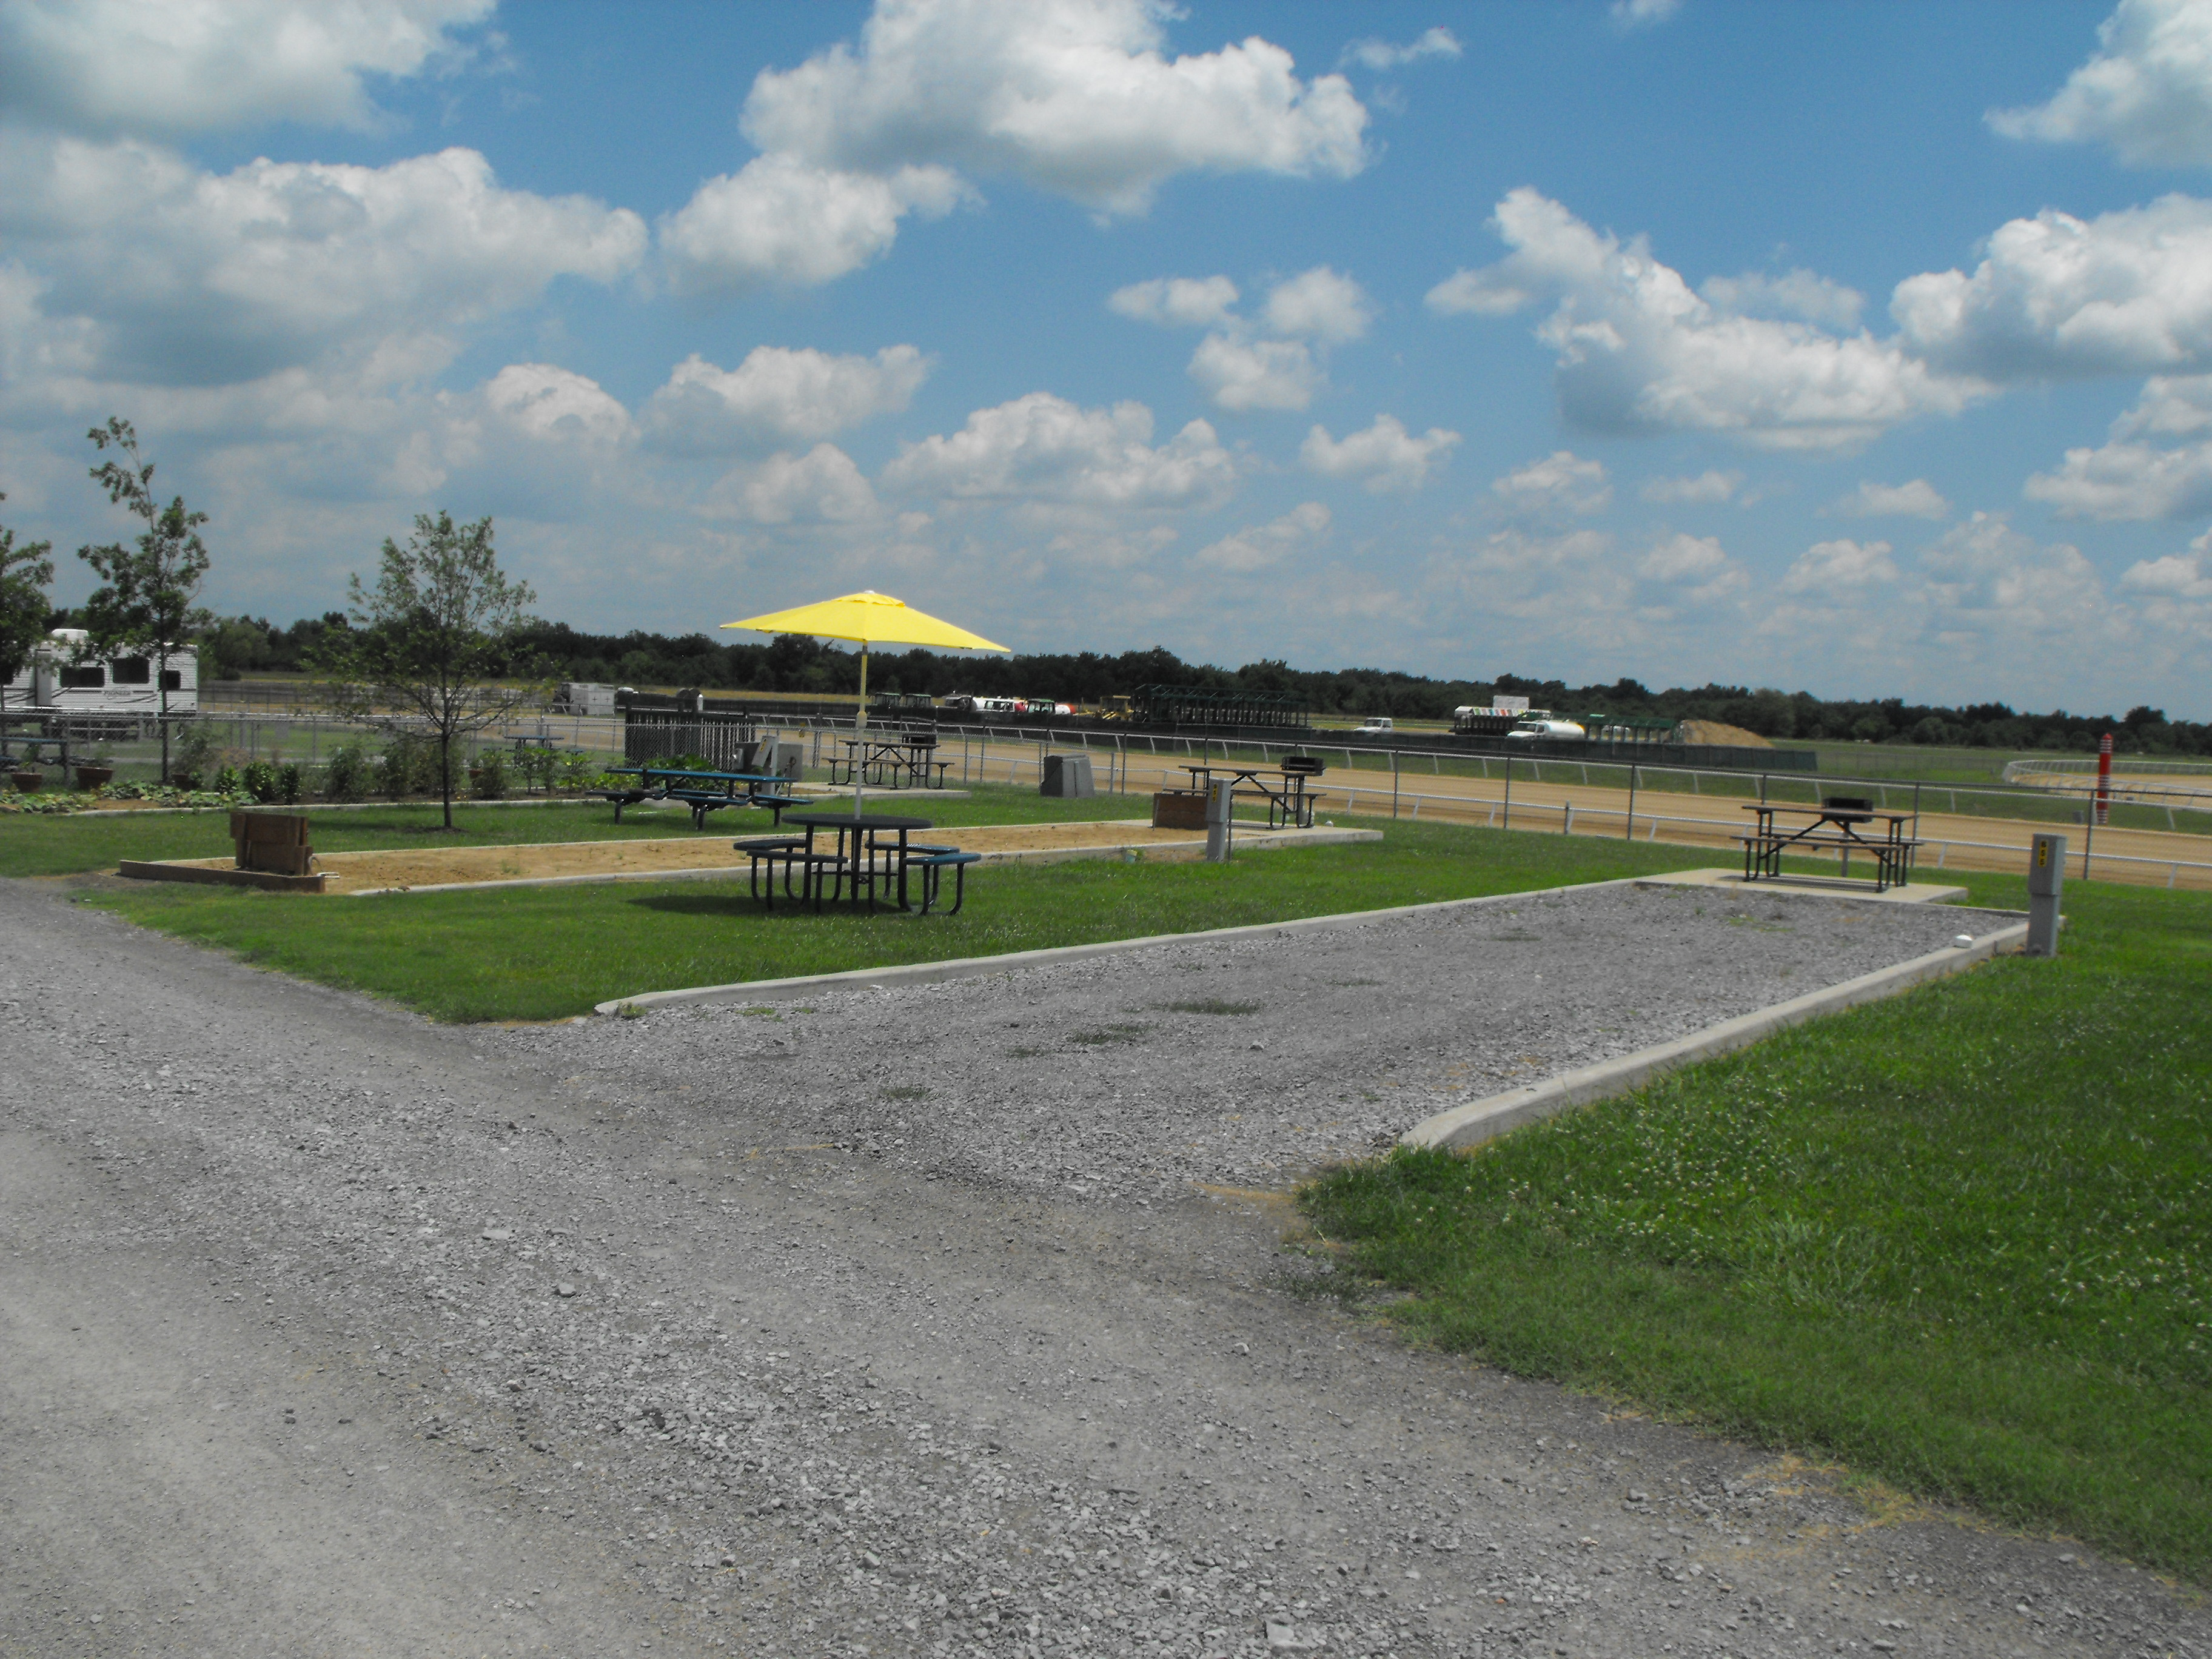 Some RV parks will let you stay long-term if you periodically move your home and/or...